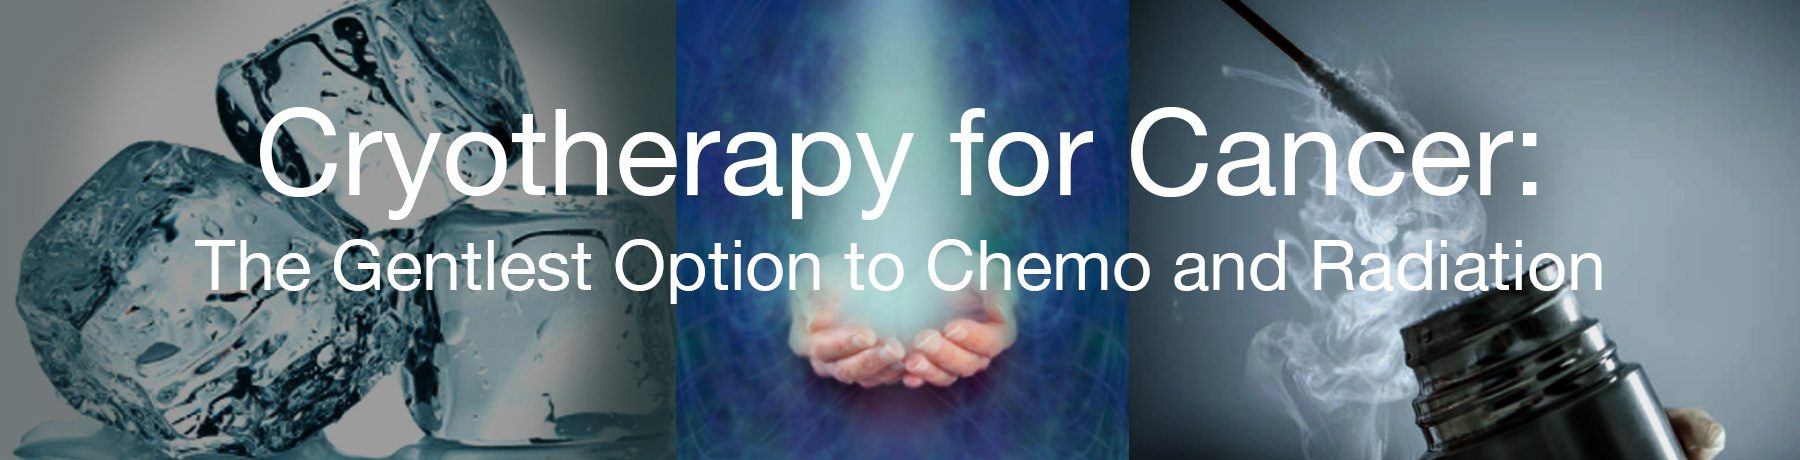 cryotherapy for cancer